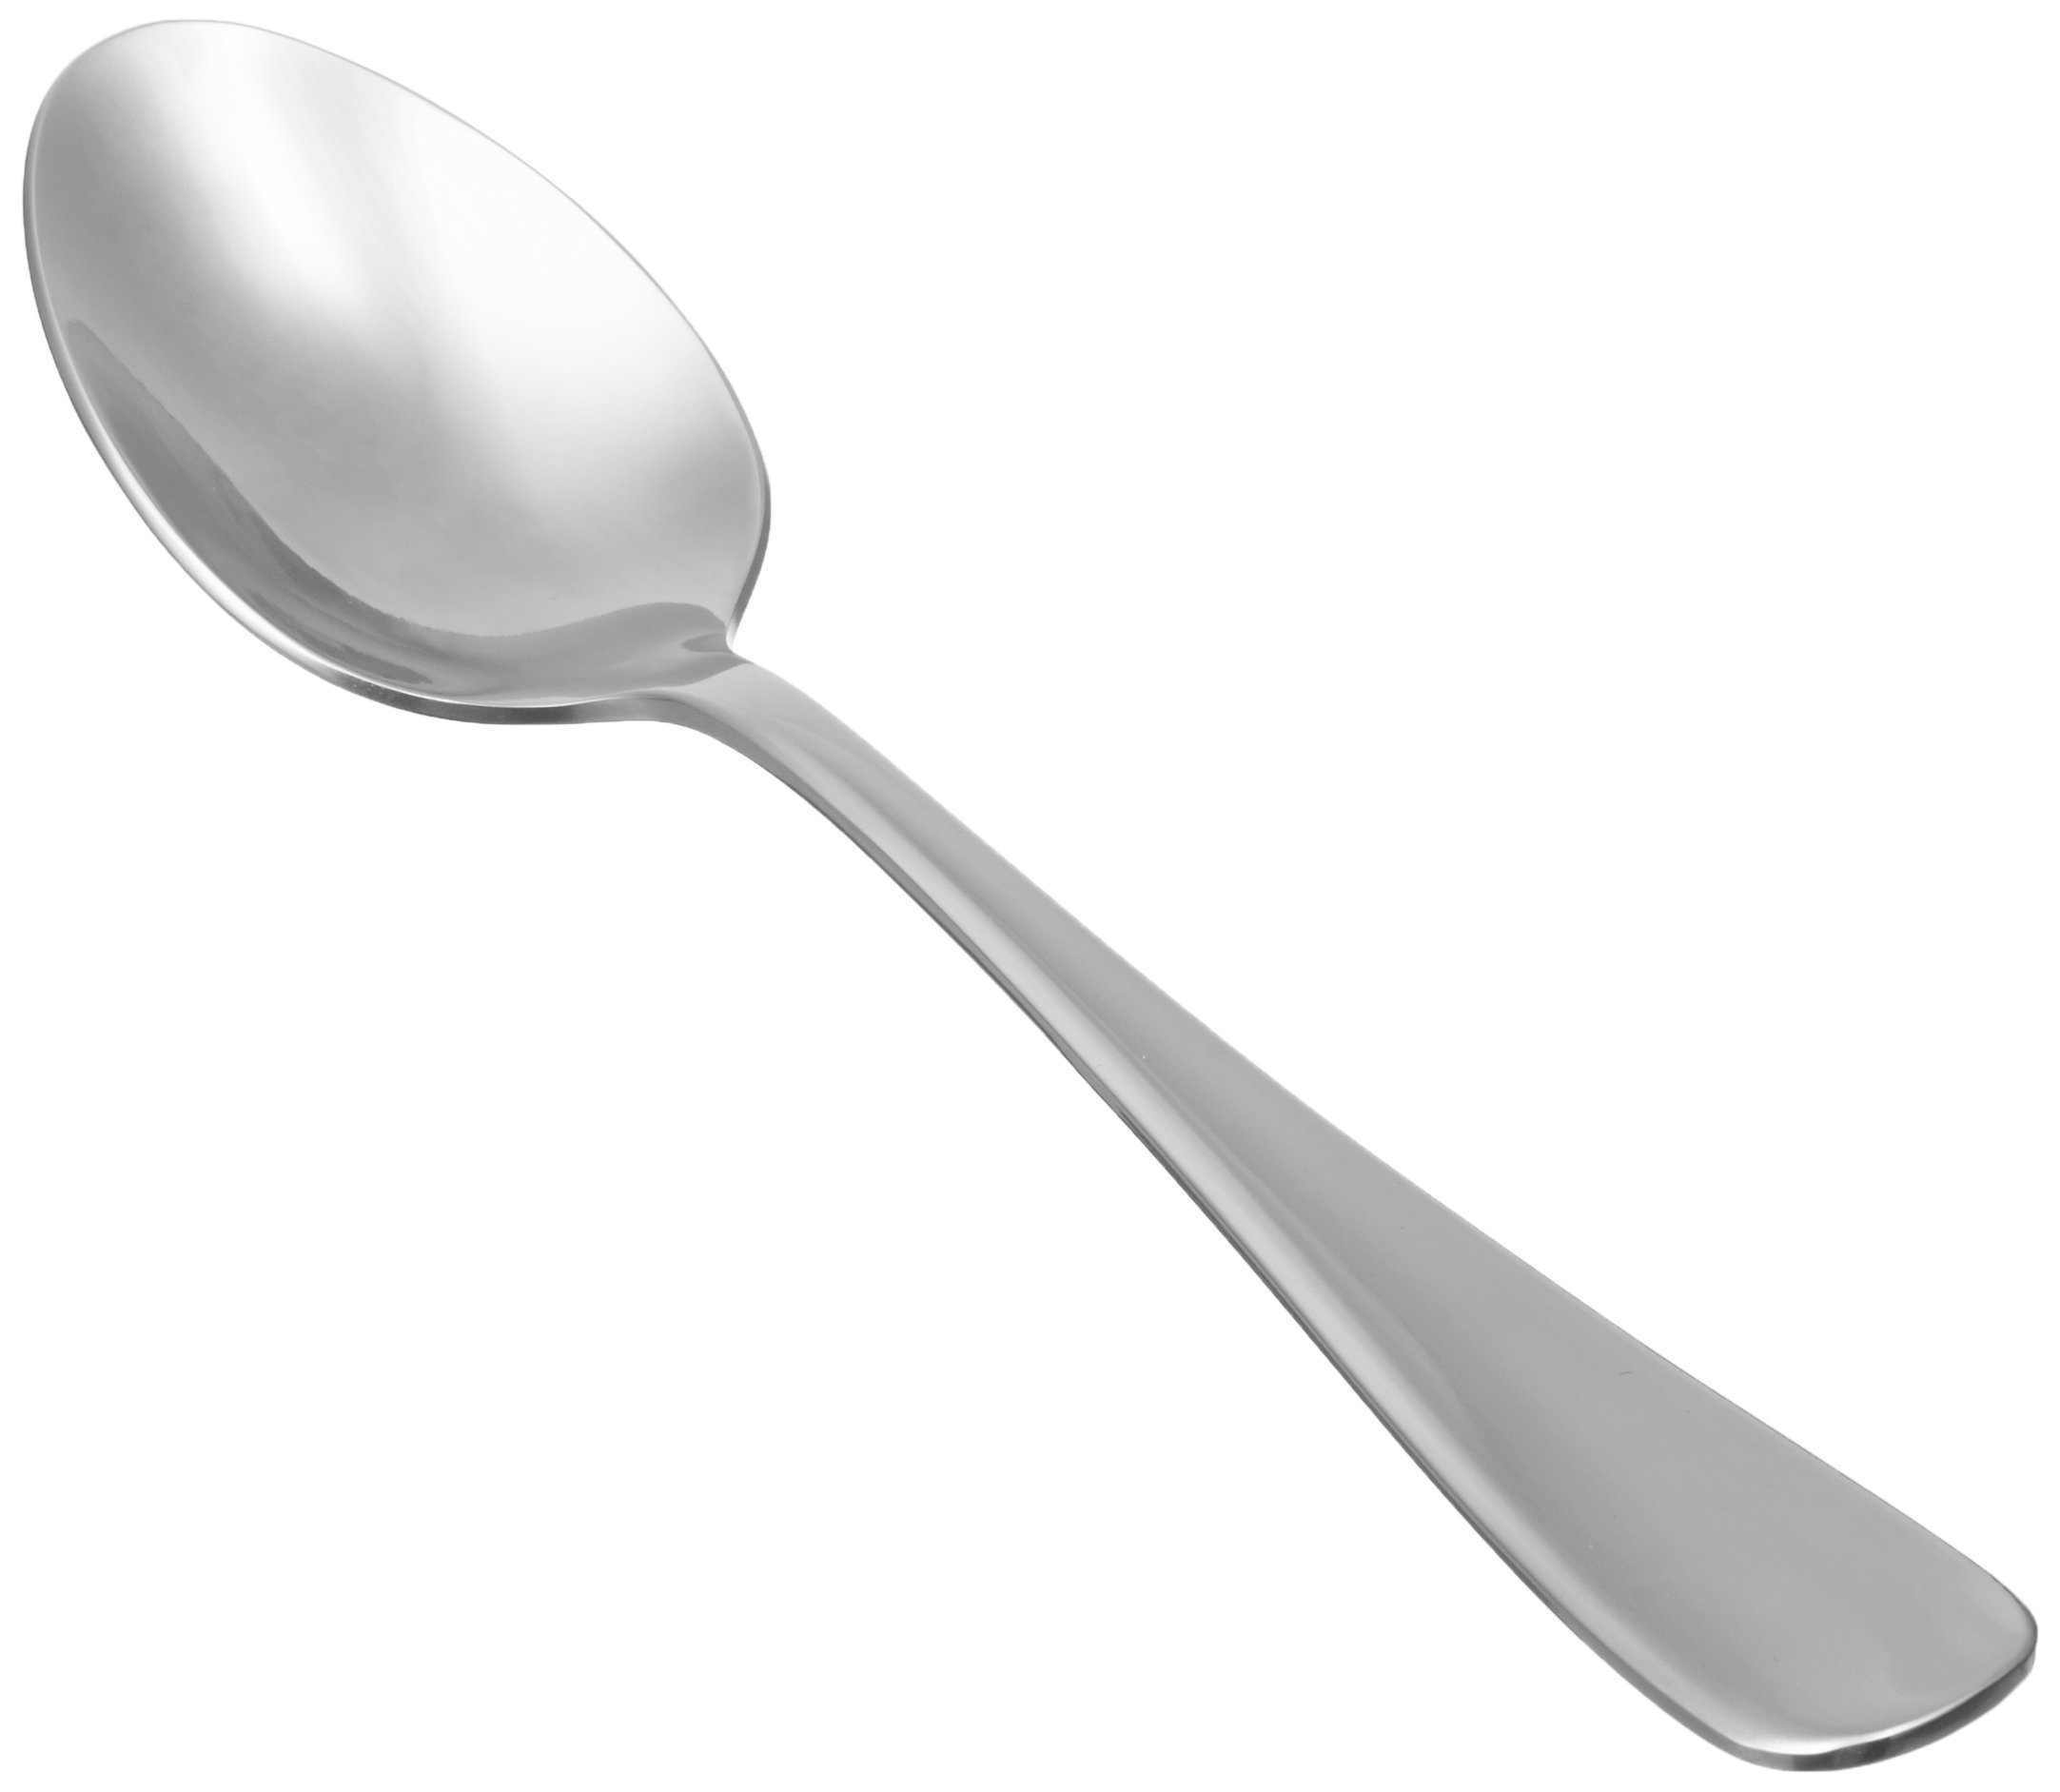 AmazonBasics Stainless Steel Dinner Spoons with Round Edge, Set of 12 by AmazonBasics